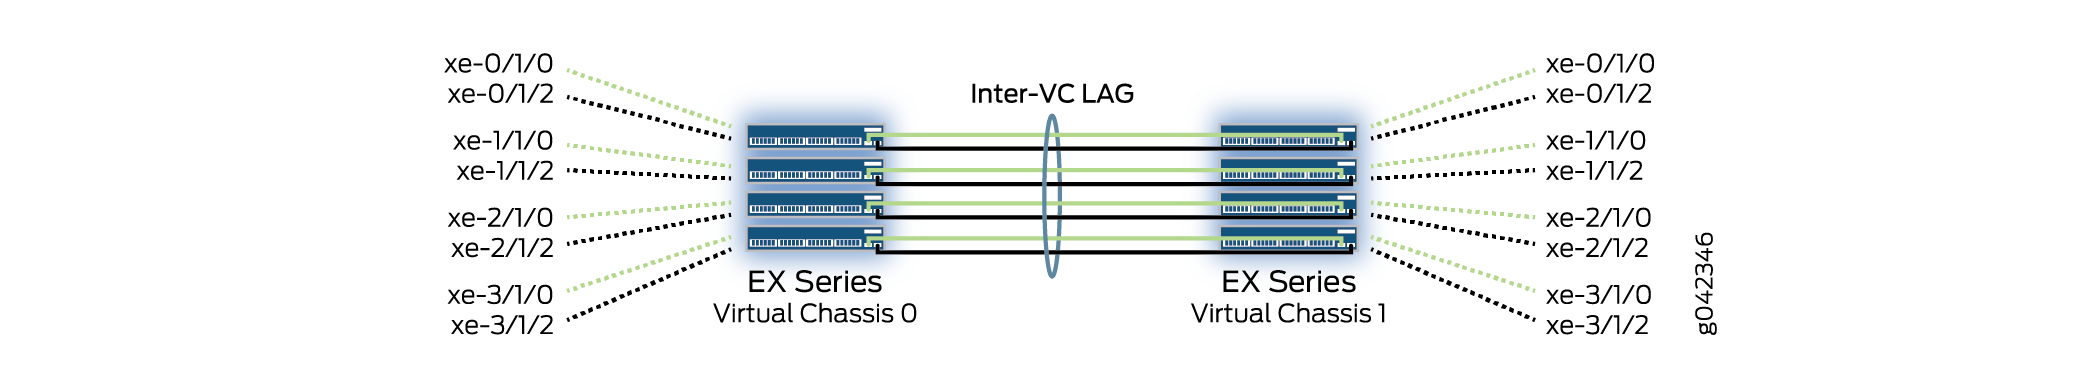 Example: Configuring the Virtual Chassis for a Copper-Based